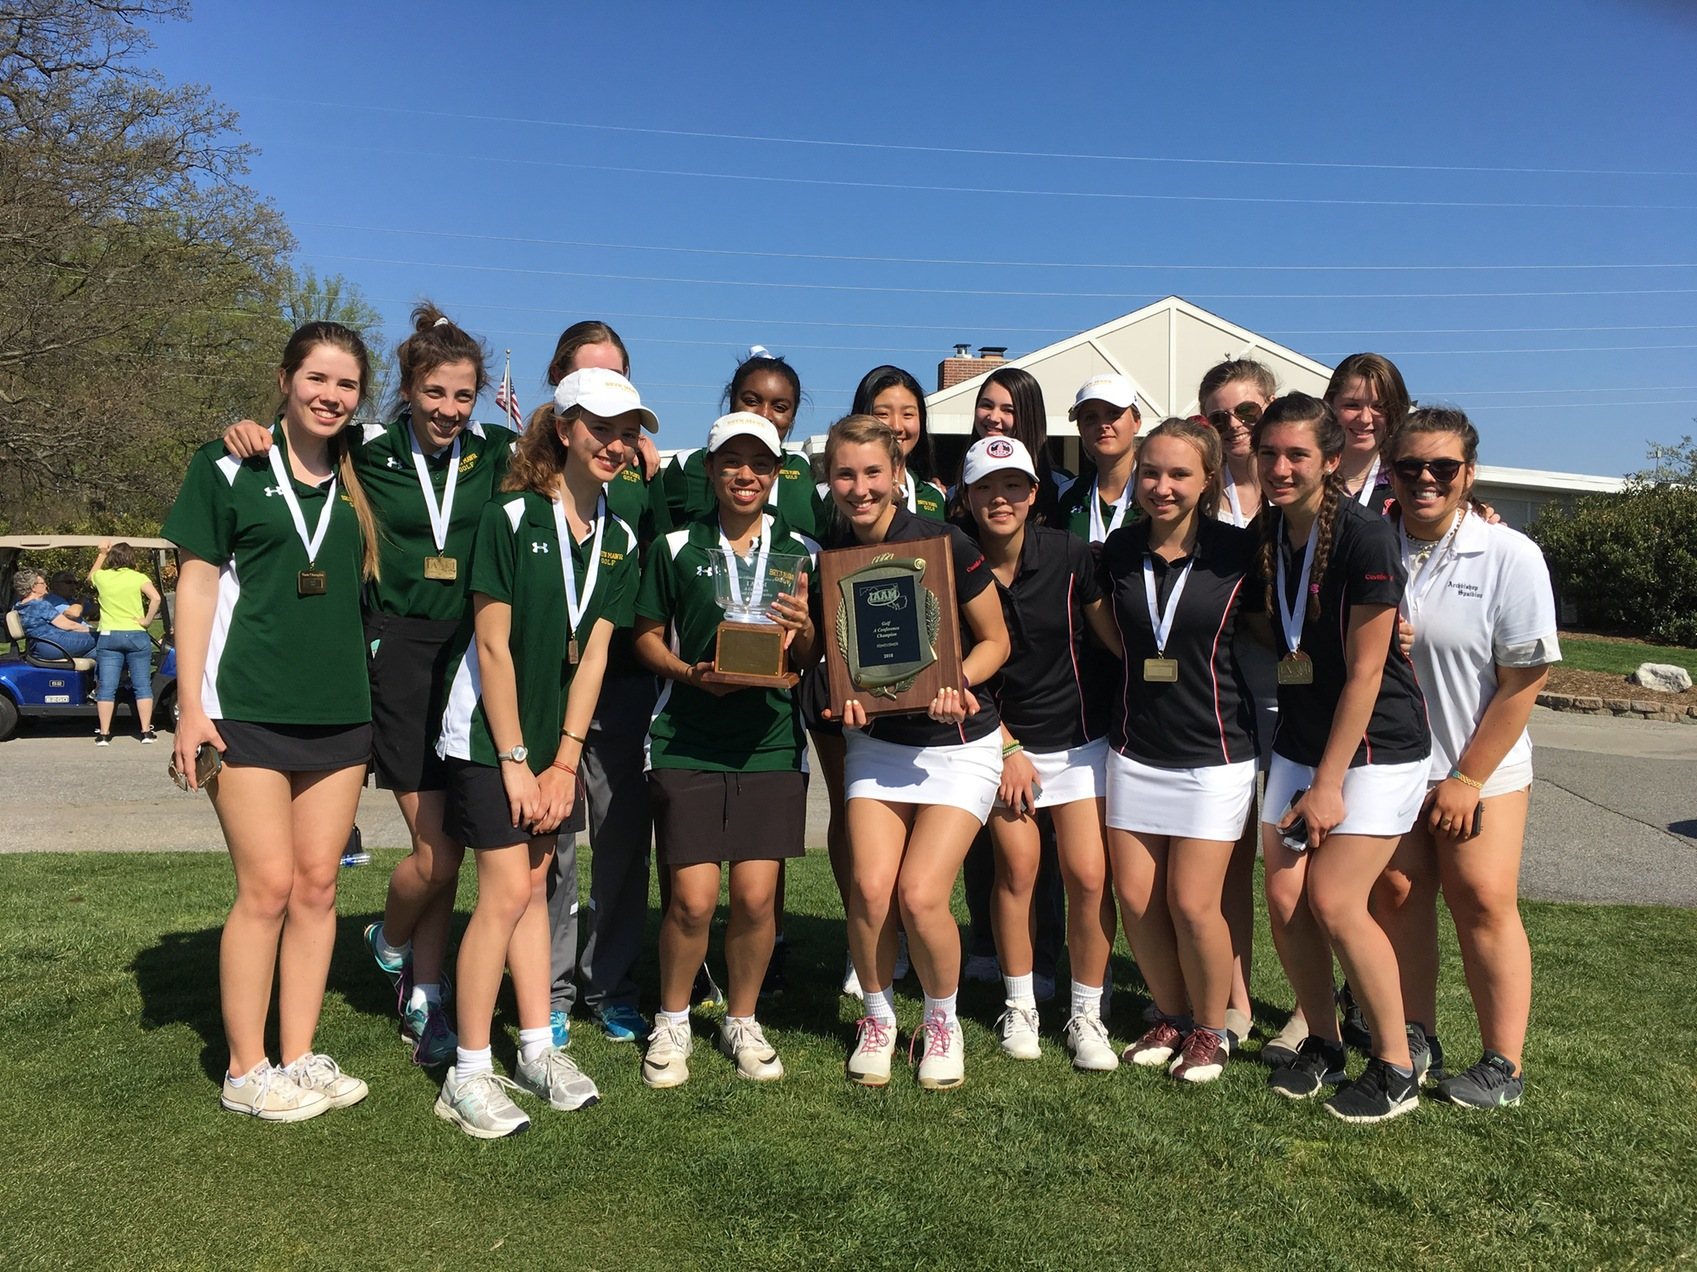 Archbishop Spalding and defending champ Bryn Mawr share A Conference golf crown